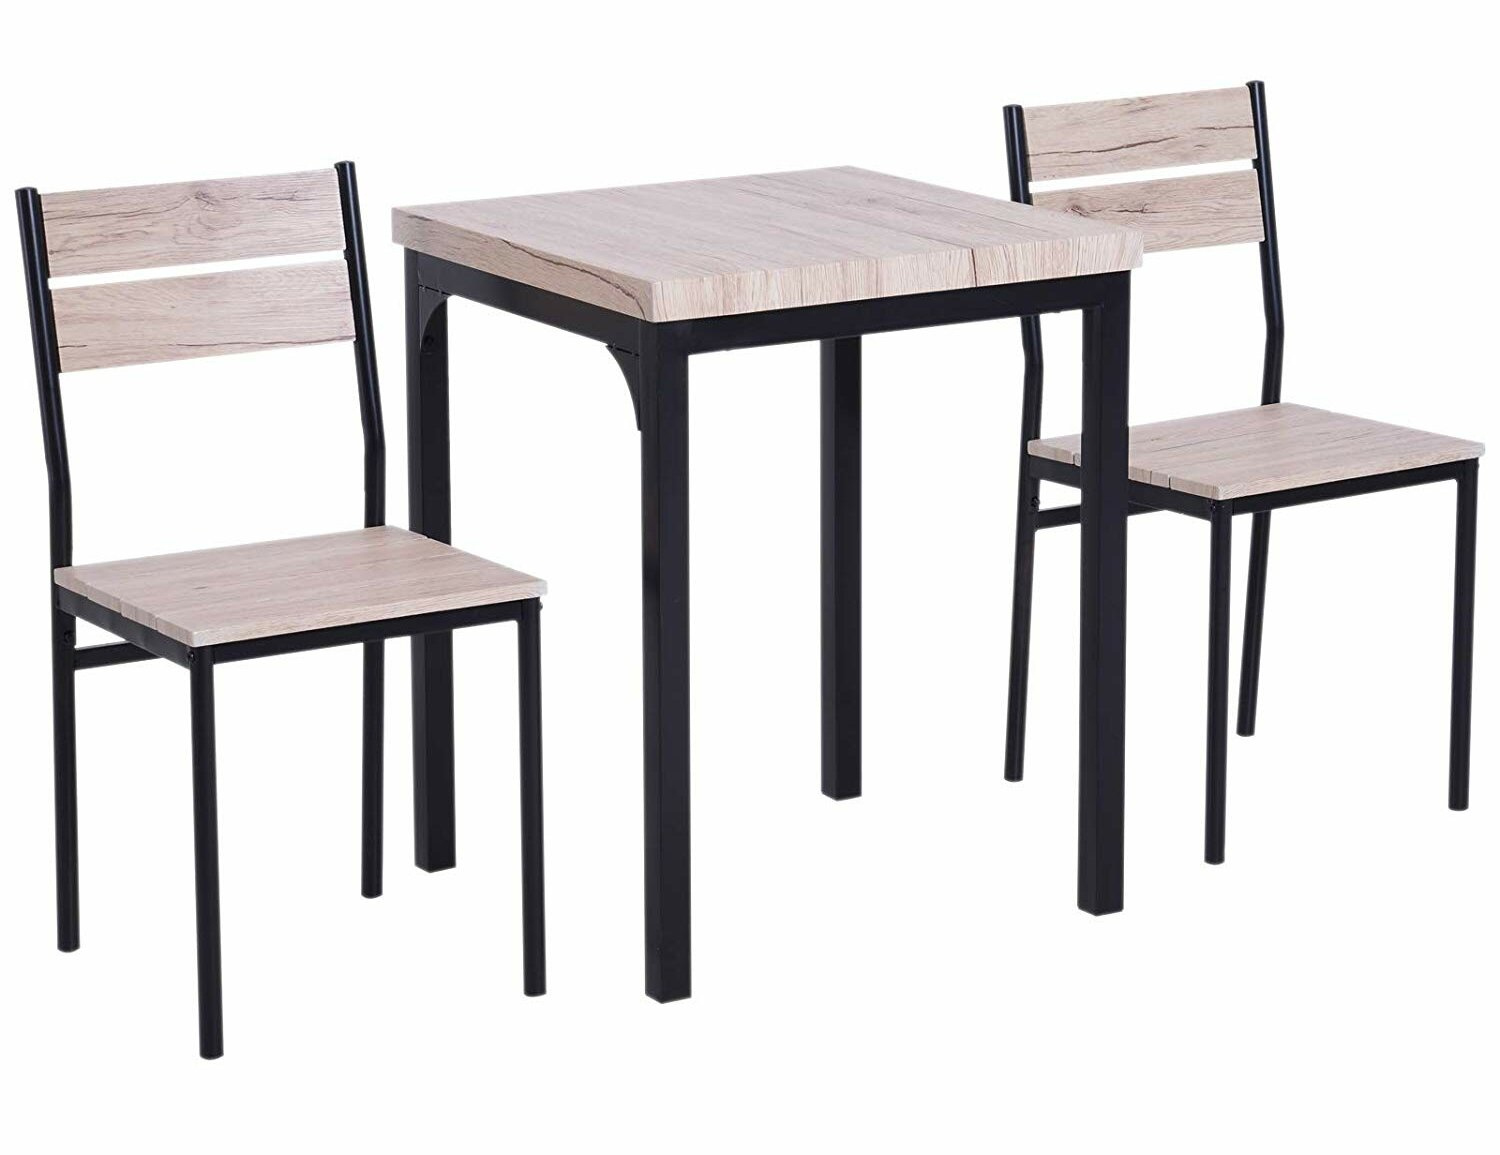 Staley Rustic Country 3 Piece Dining Set For Latest Weatherholt Dining Tables (View 9 of 20)